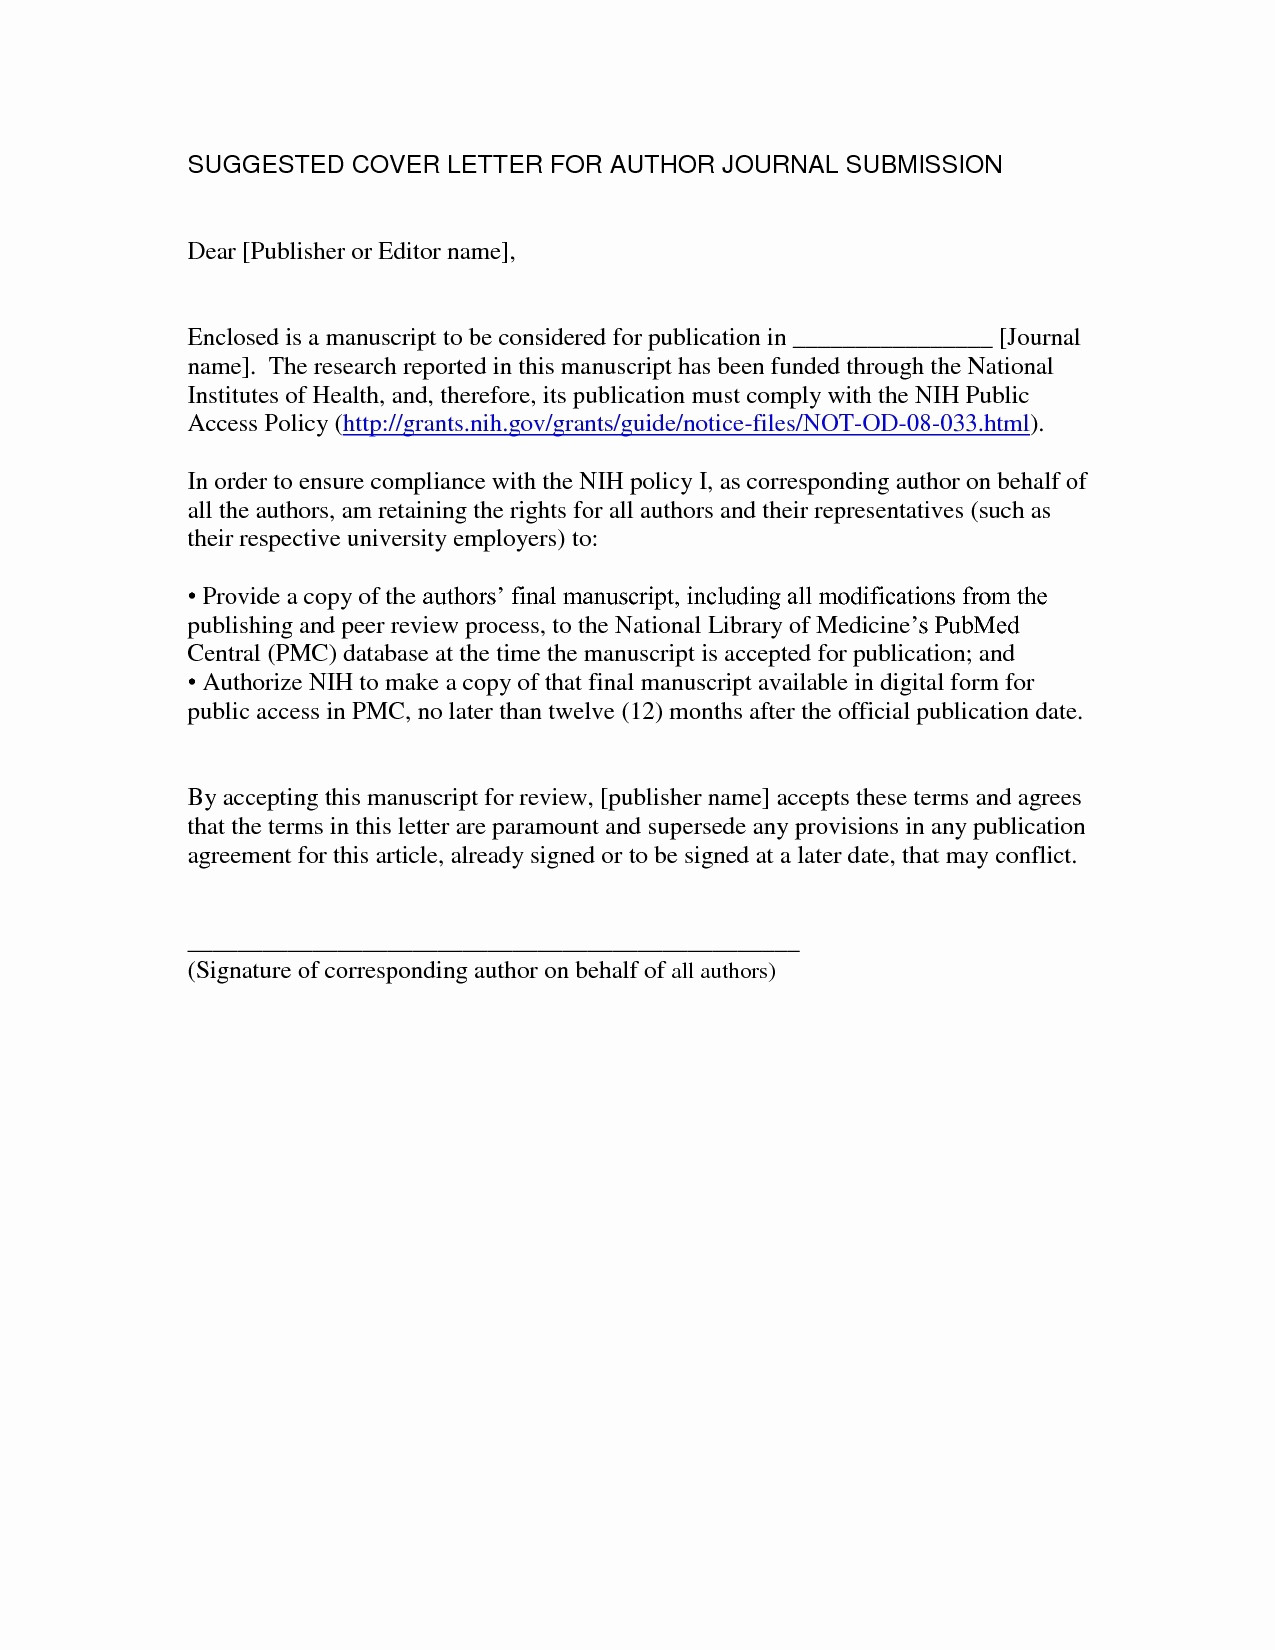 Letter to Seller From Buyer Template - 15 New Sample Contract for Selling A House